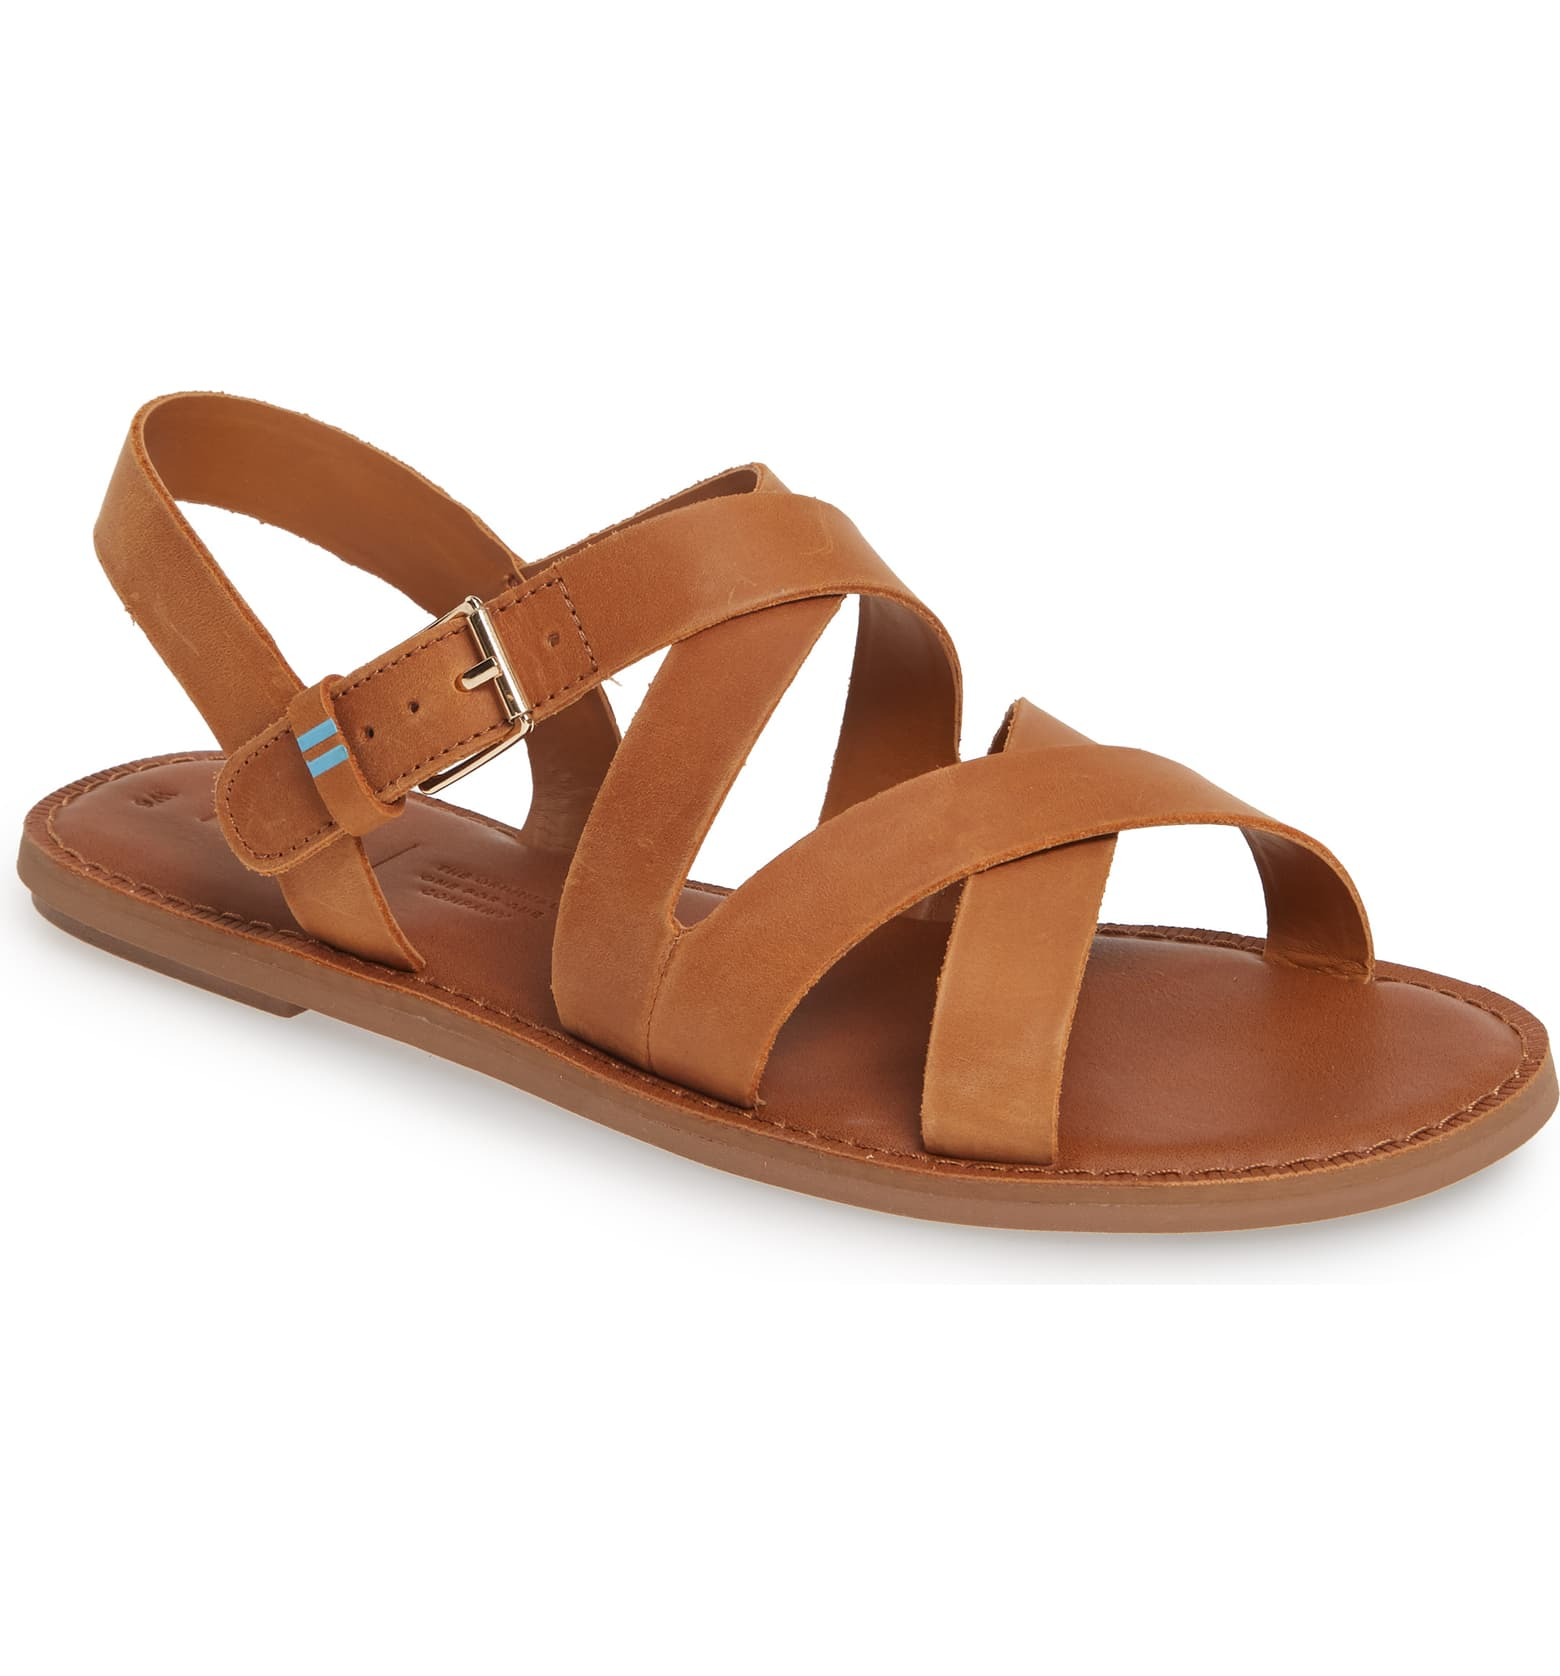 toms brown strap sandals